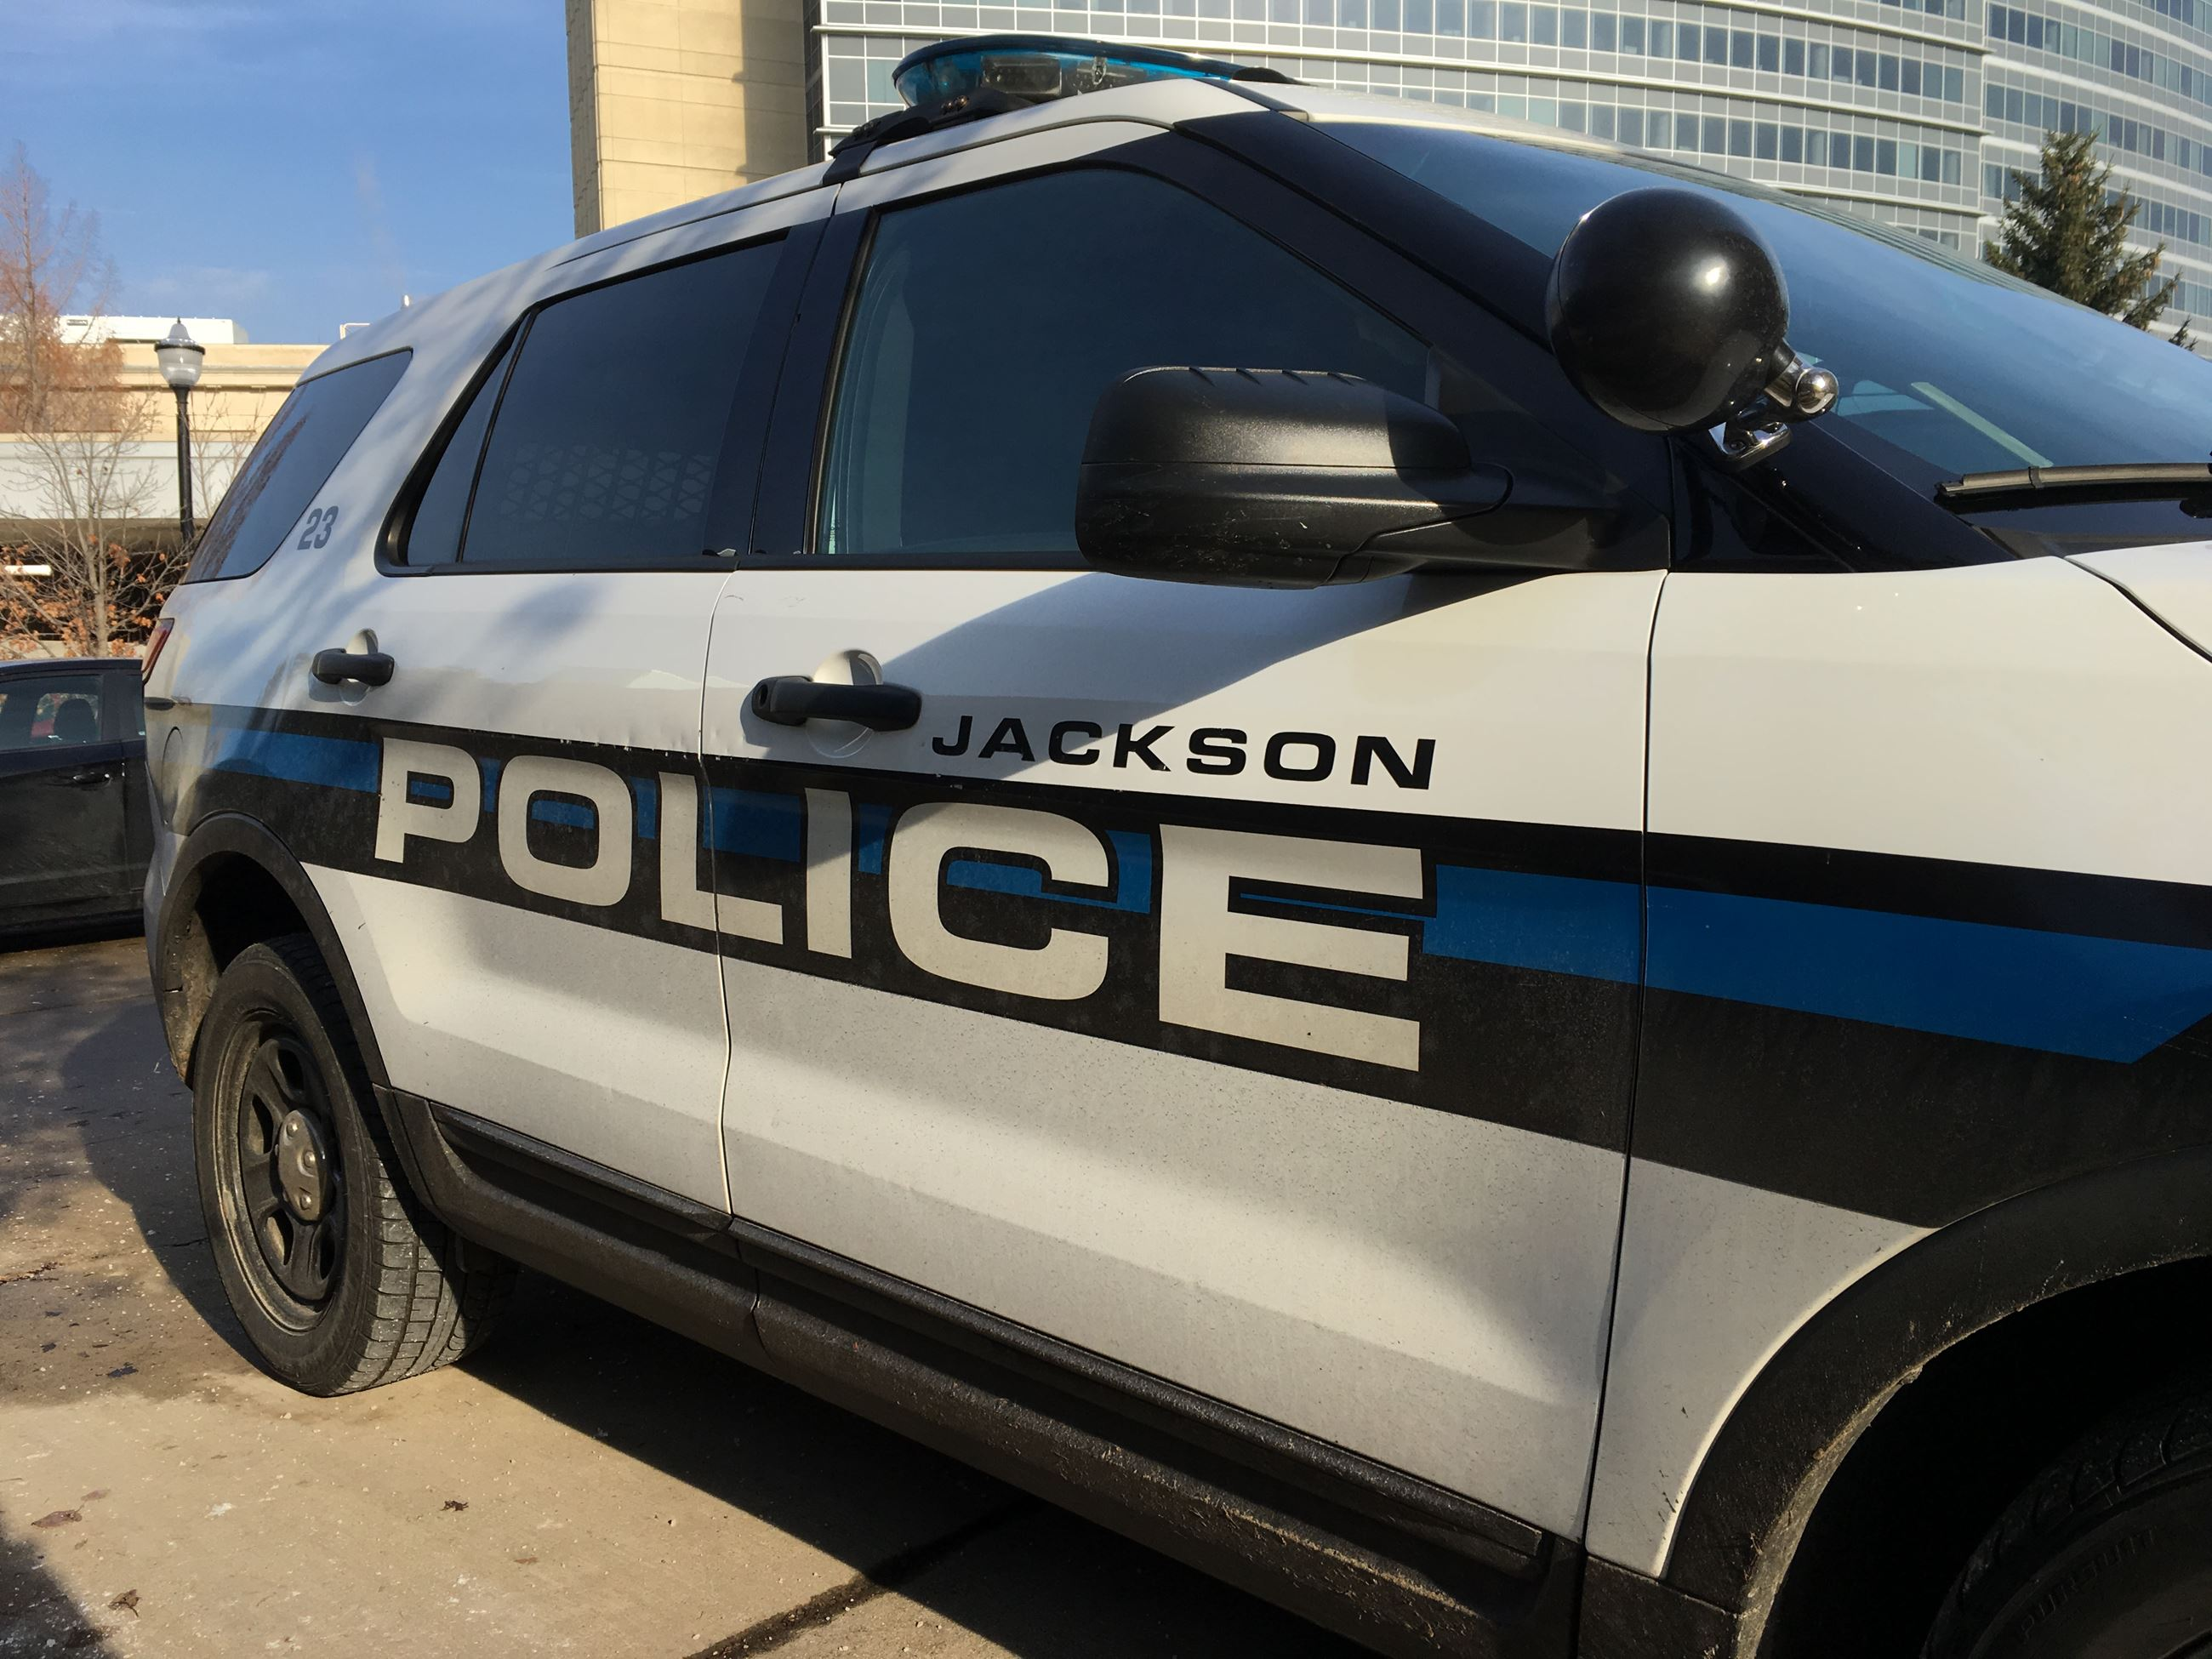 Exterior view of Jackson Police Department patrol car